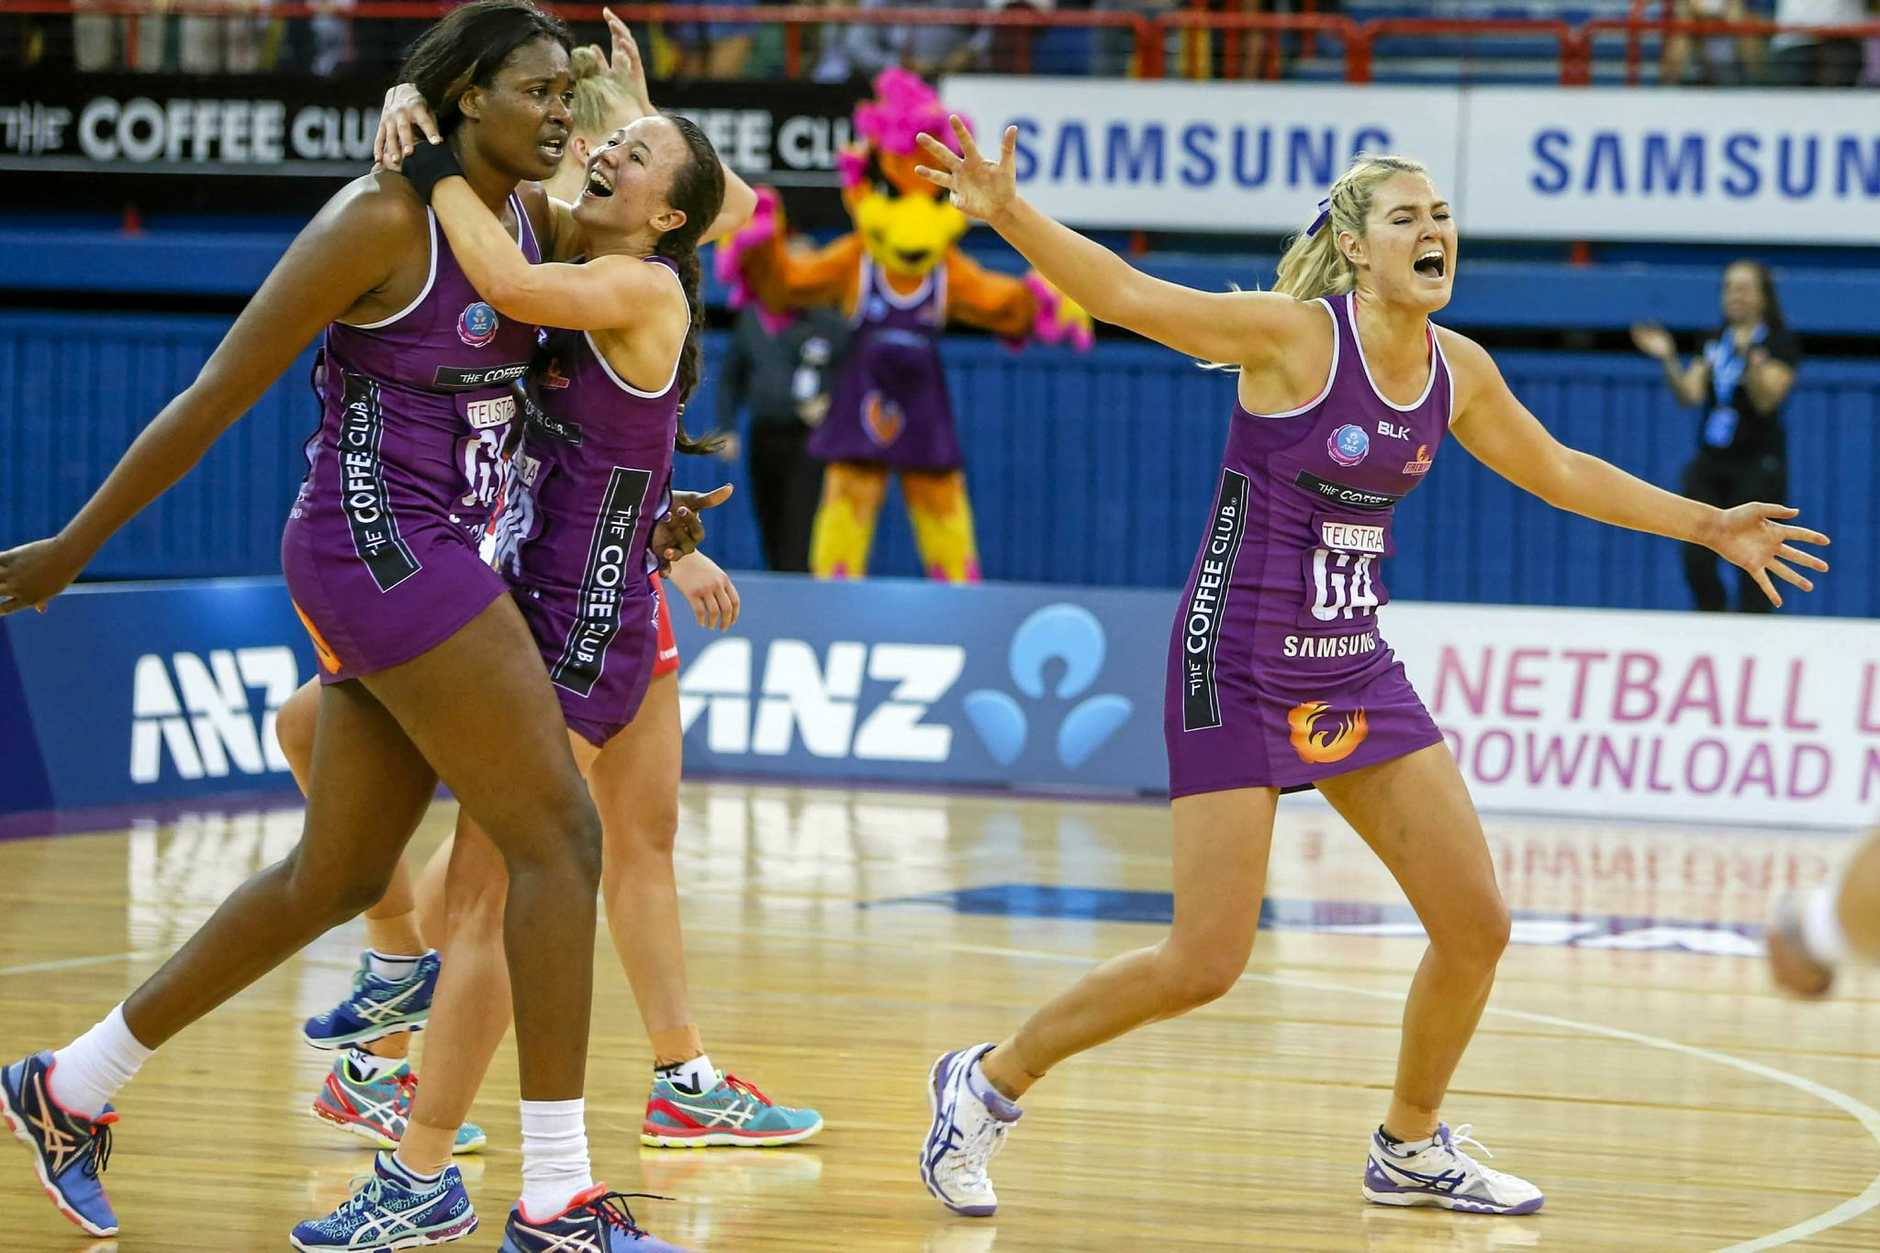 Romelda Aiken,Caitlyn Nevins and Gretel Tippett of the Firebirds celebrate after winning the grand final match of the ANZ Championship between the Queensland Firebirds and the NSW Swifts at the Brisbane Entertainment Centre in Brisbane, Sunday, July 31, 2016. (AAP Image/Glenn Hunt) NO ARCHIVING, EDITORIAL USE ONLY